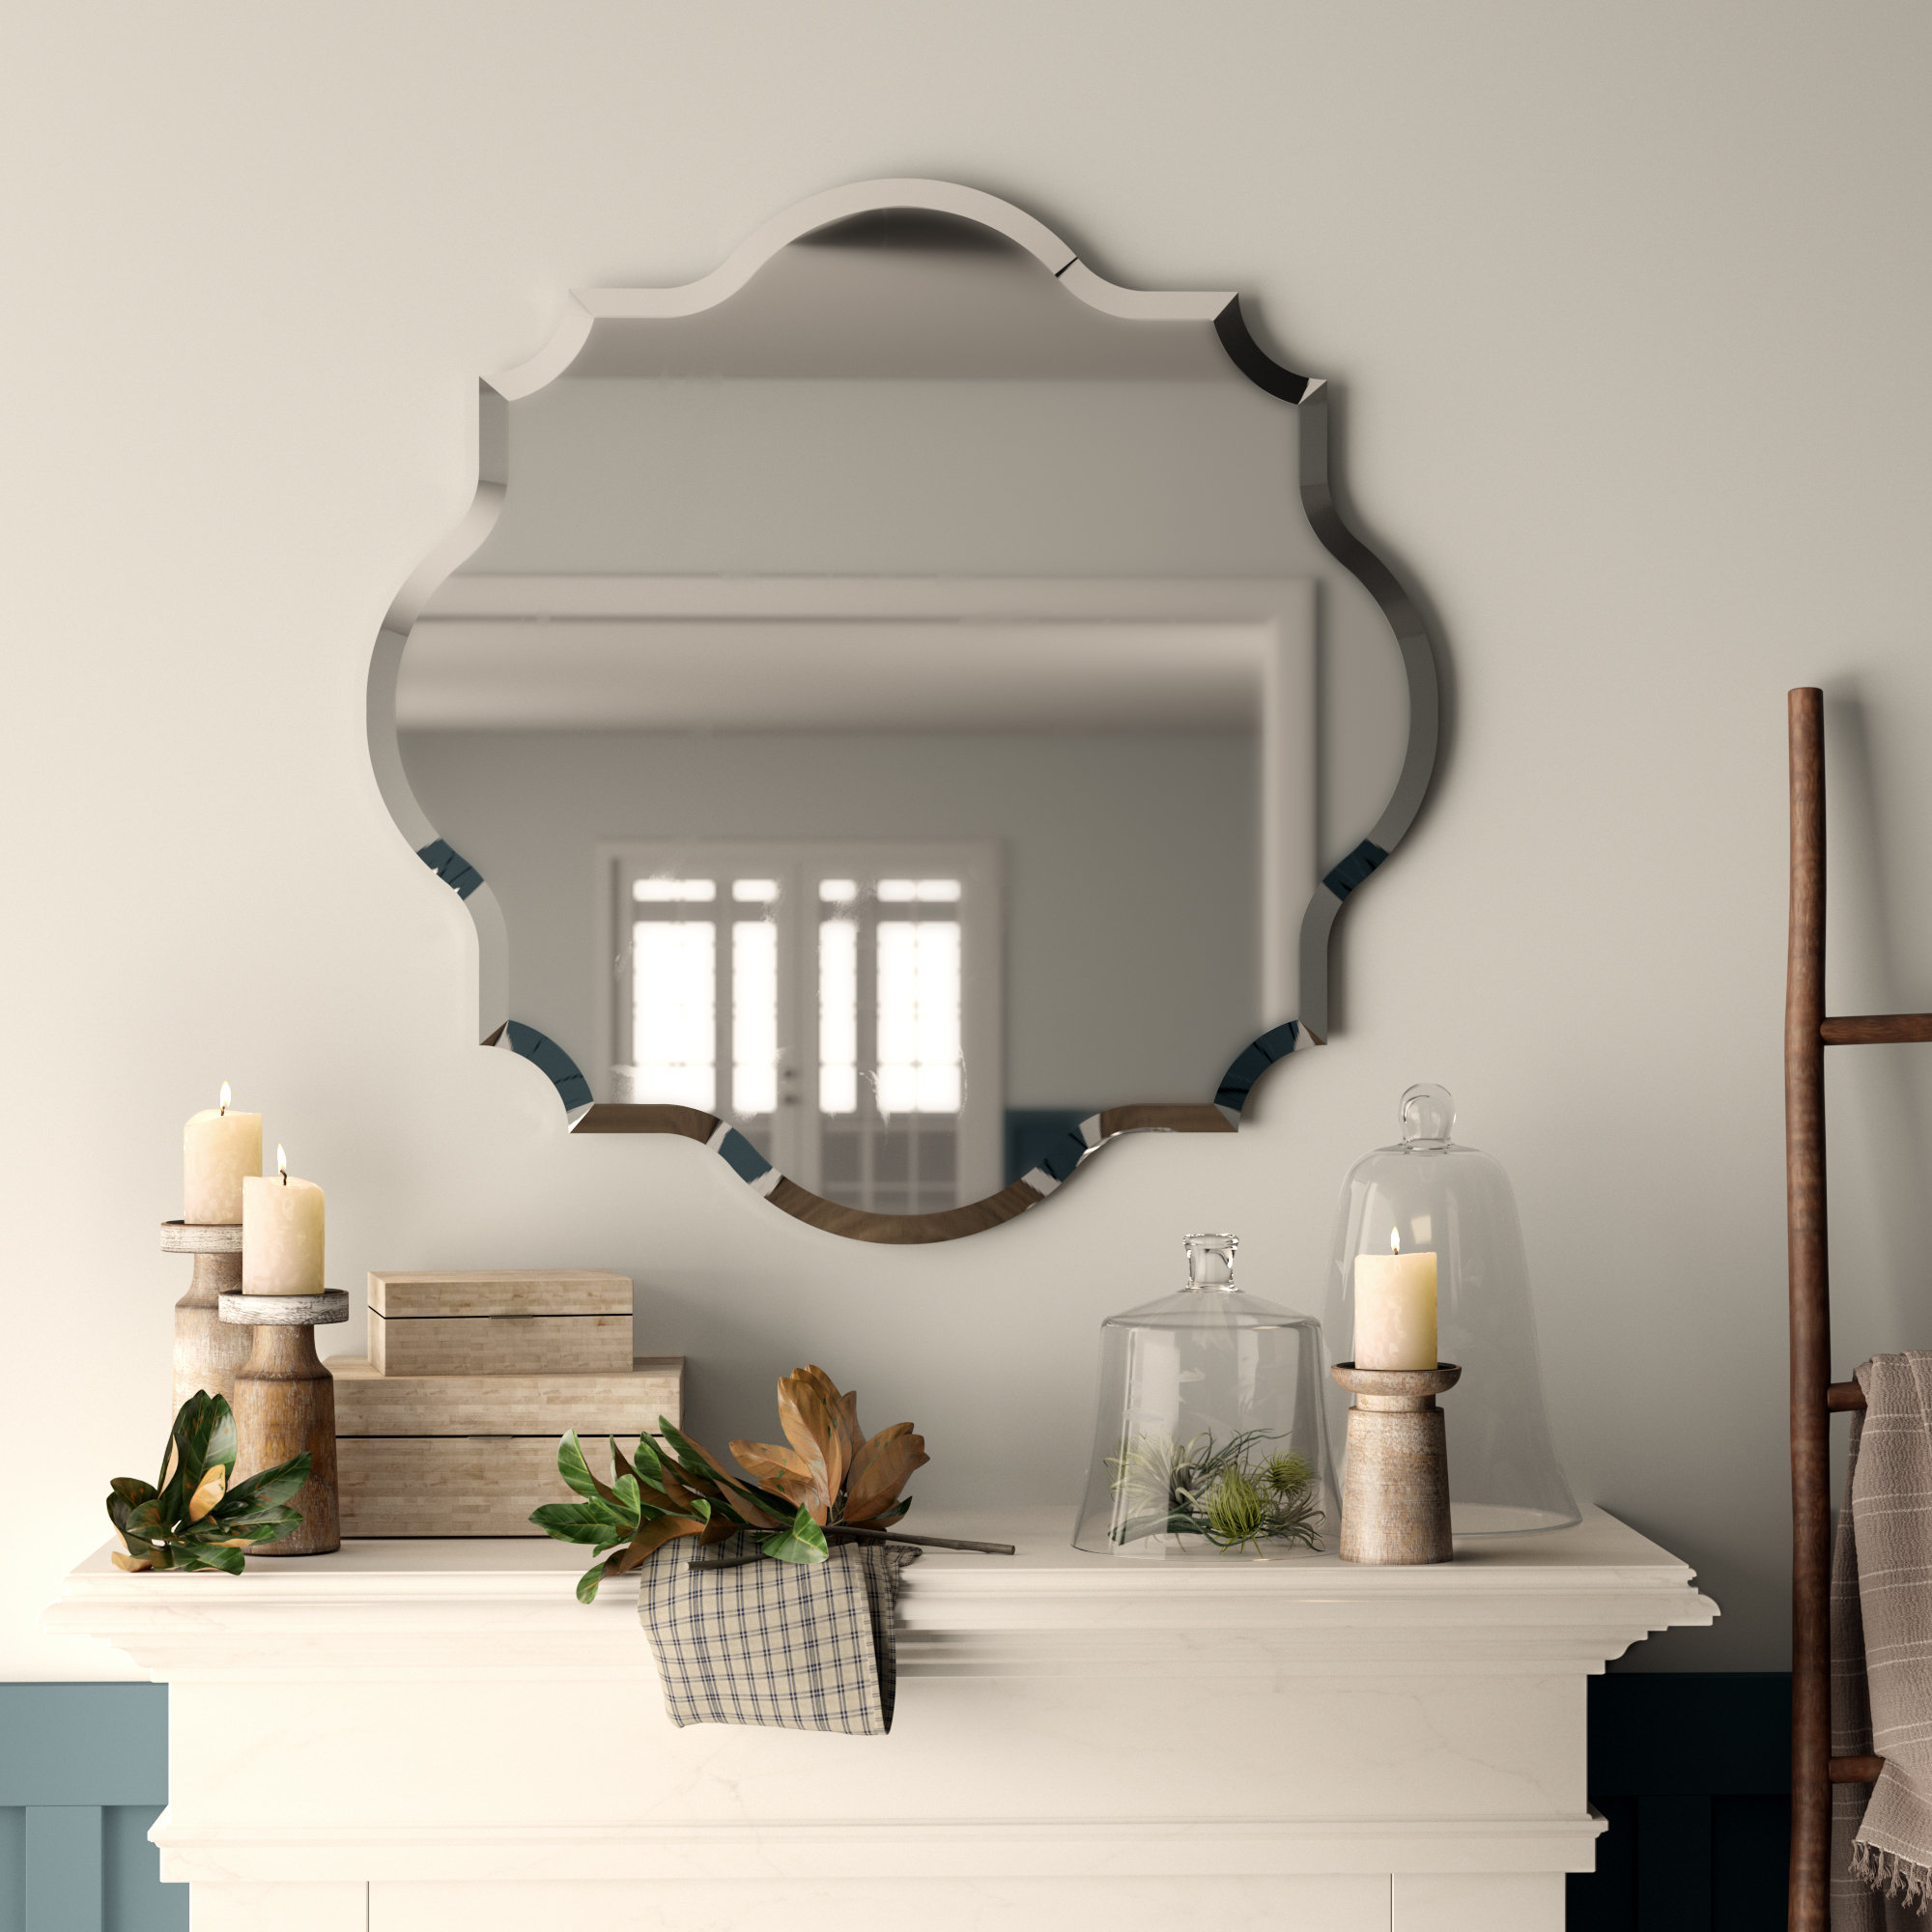 Helder Modern & Contemporary Wall Mirror Pertaining To Guidinha Modern & Contemporary Accent Mirrors (View 16 of 30)